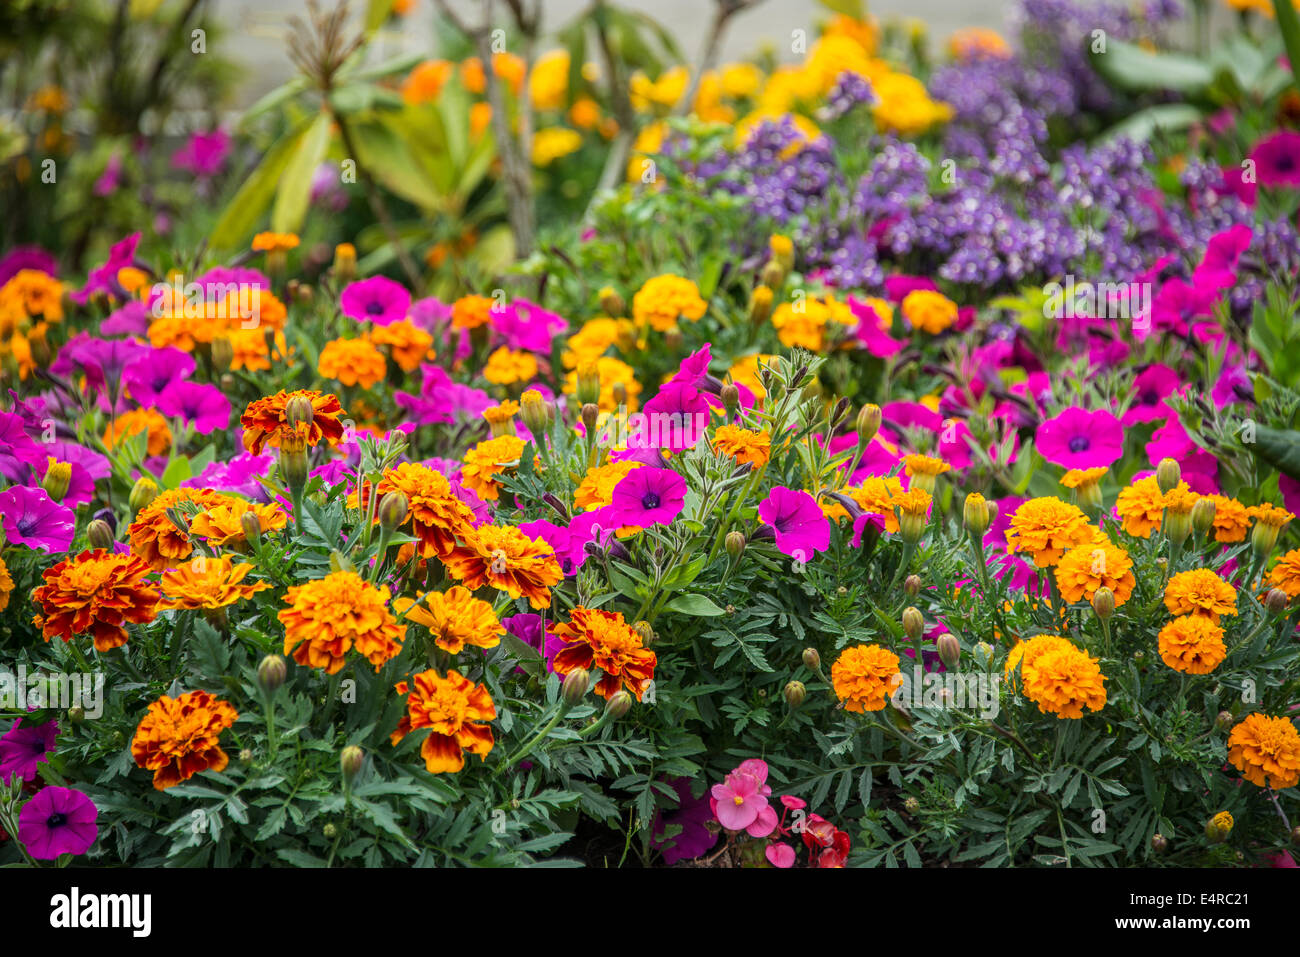 Summer Bedding Plants High Resolution Stock Photography And Images Alamy